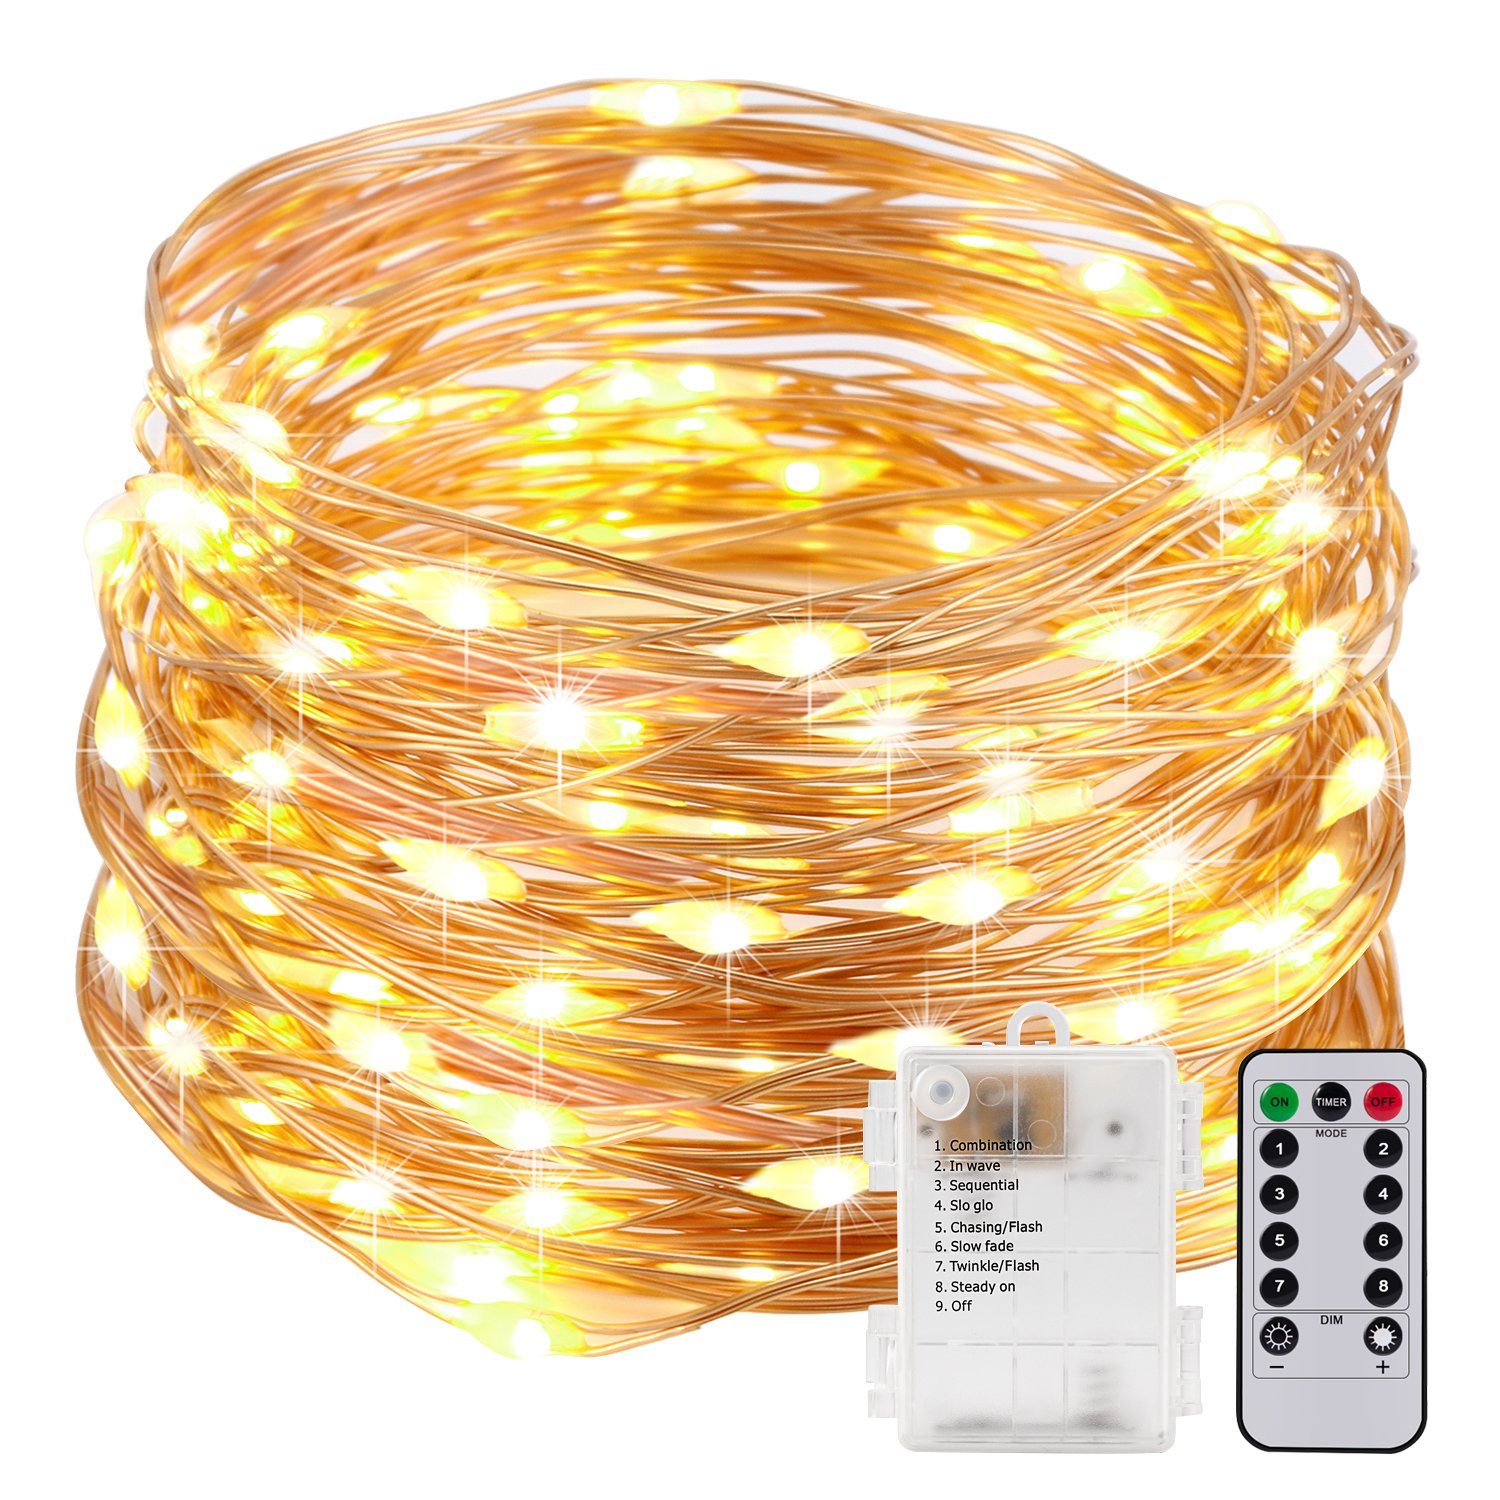 Led Rope Lights With Remote: Kohree String Lights LED Copper Wire Fairy Christmas Light